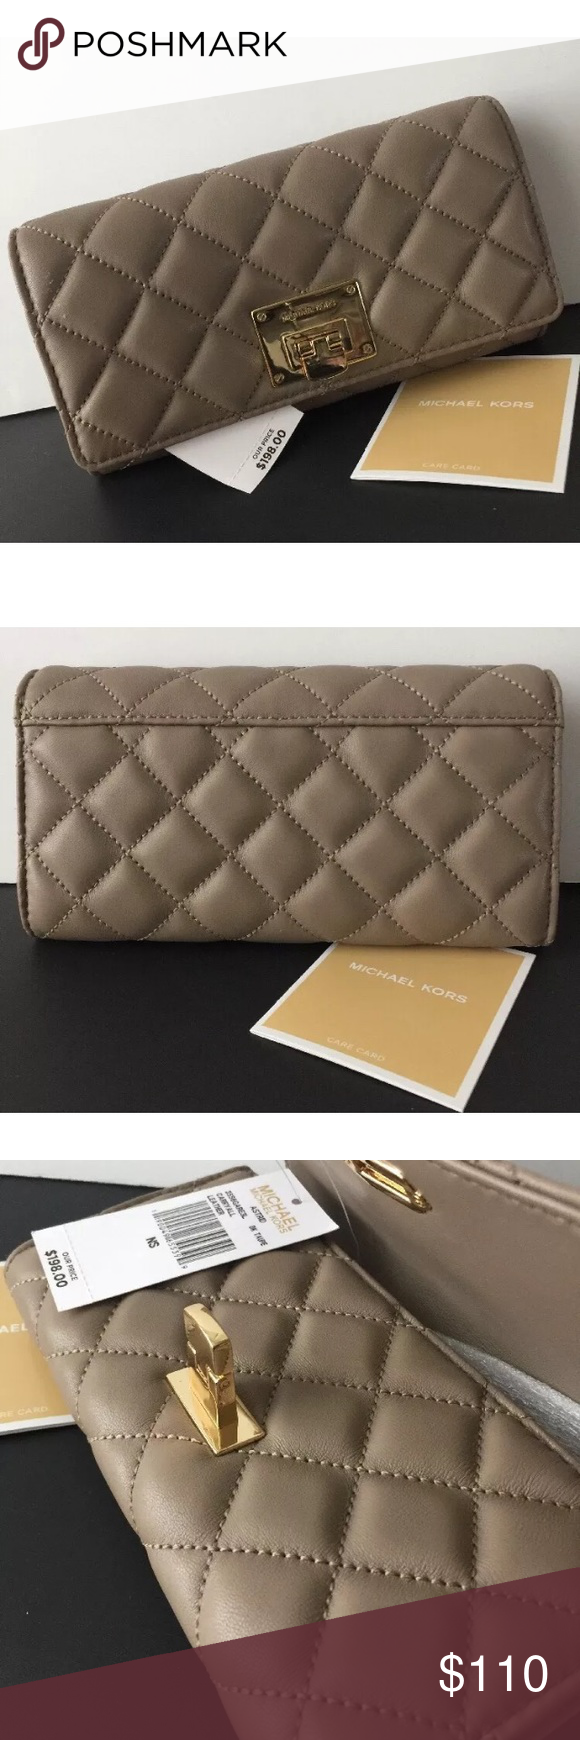 cdea7e5d293684 Michael Kors Astrid Carryall Quilt Lthr Wallet 100% AUTHENTIC! NEW WITH TAG  &